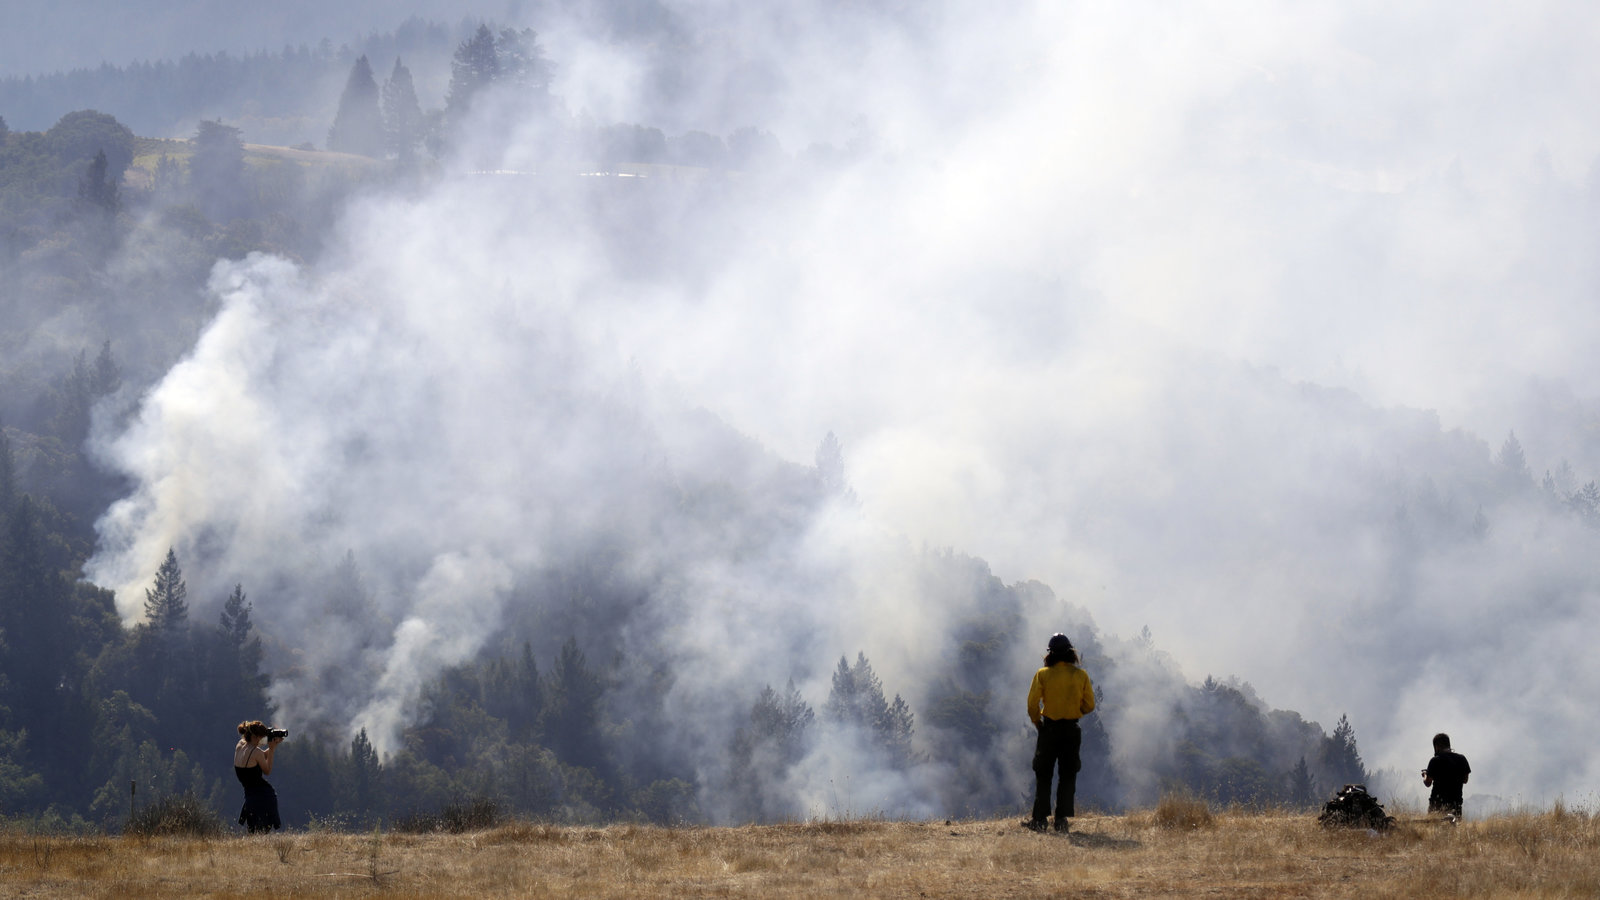 Rep. Westerman Pushes for Needed Reform Amid Catastrophic Wildfires